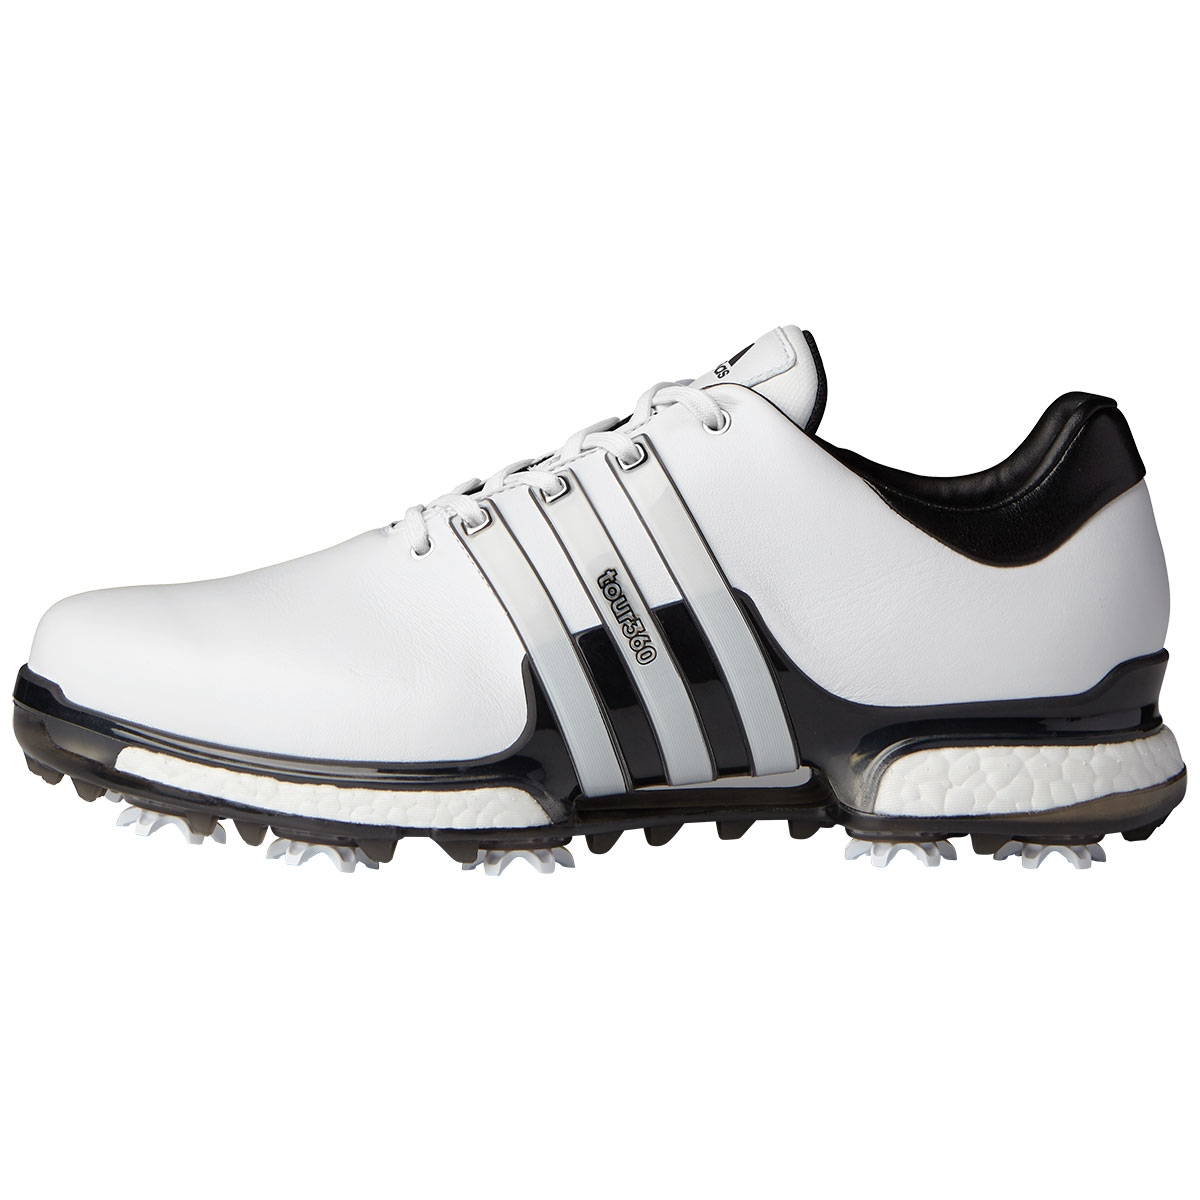 Adidas Mens Tour360 Boost 2.0 Golf Shoe - White/Black Wide